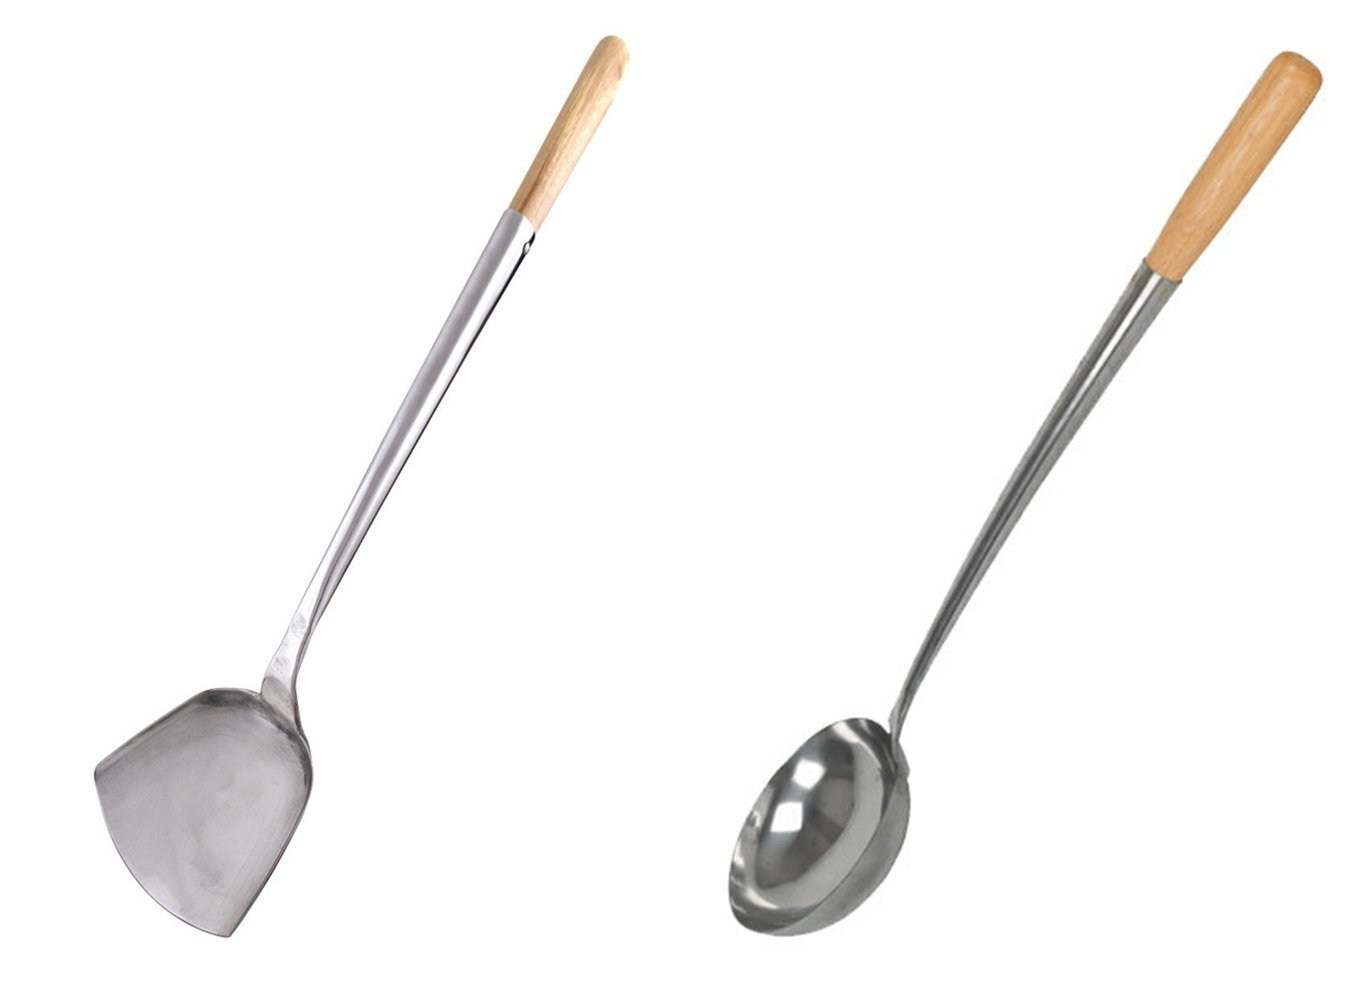 Home Use Stainless Hand-Tooled Chuan & Hoak (Spatula & Ladle) Set (L,19.25'')